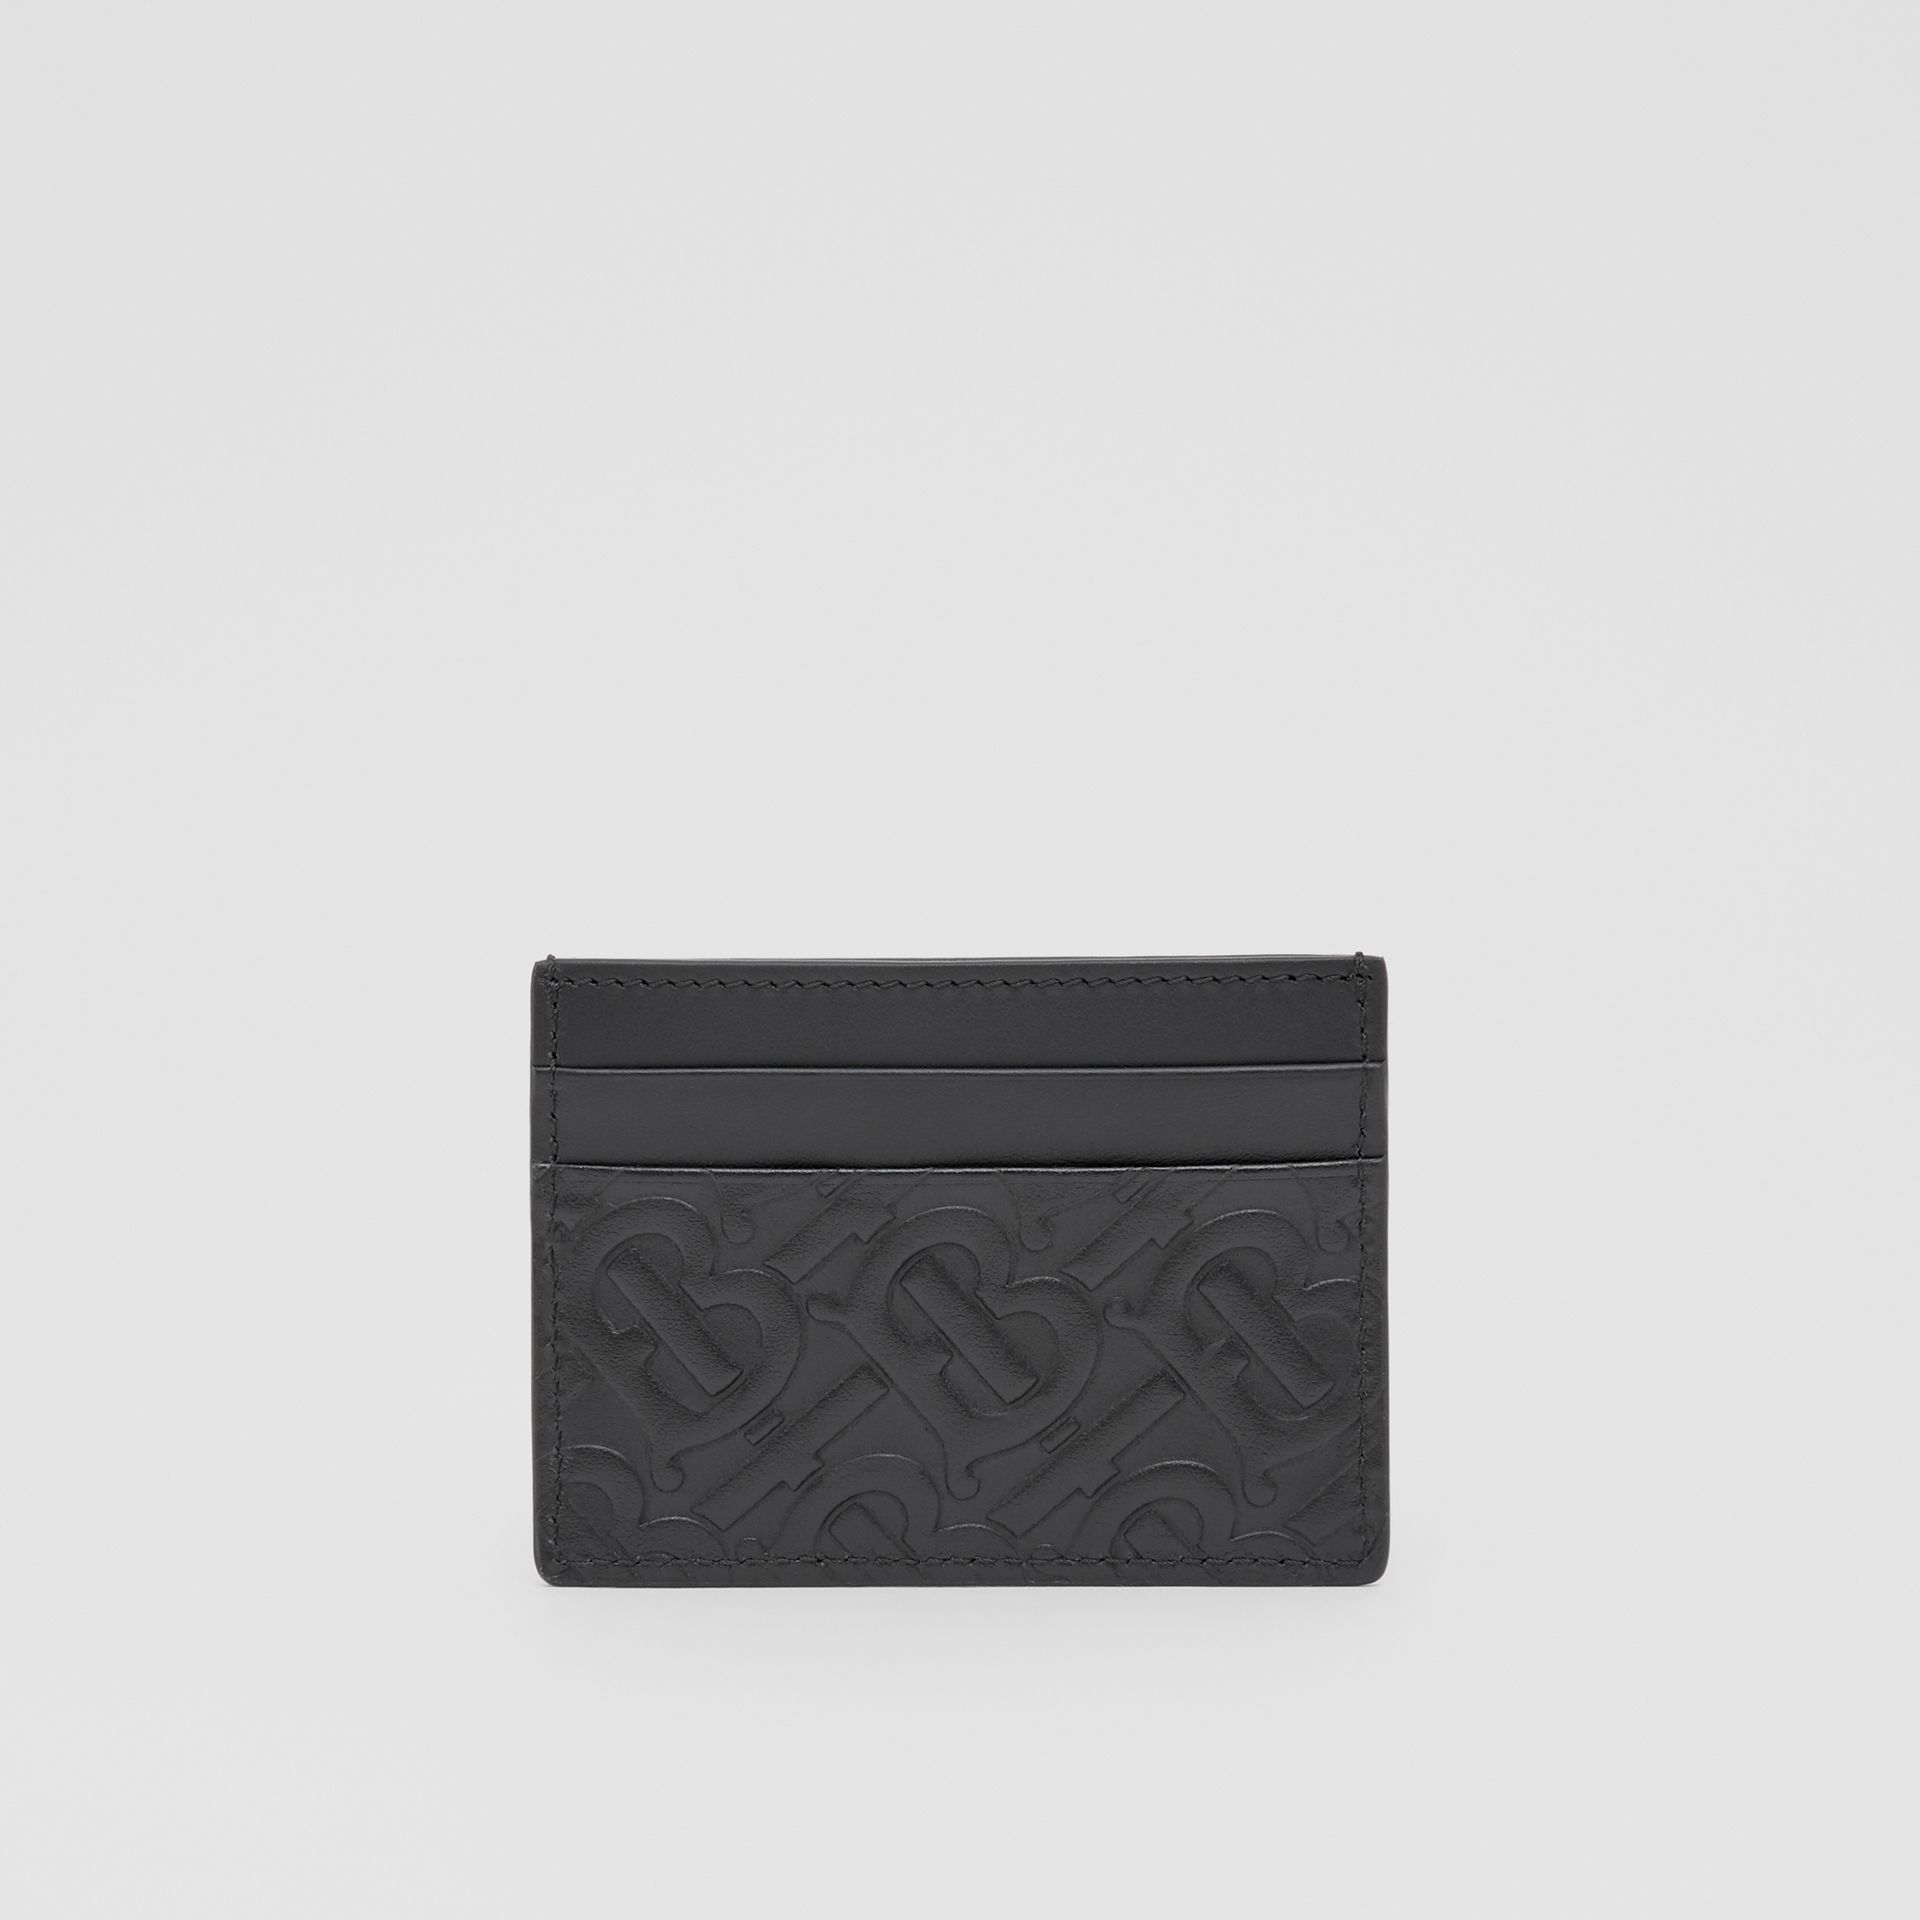 Monogram Leather Card Case in Black | Burberry - gallery image 4